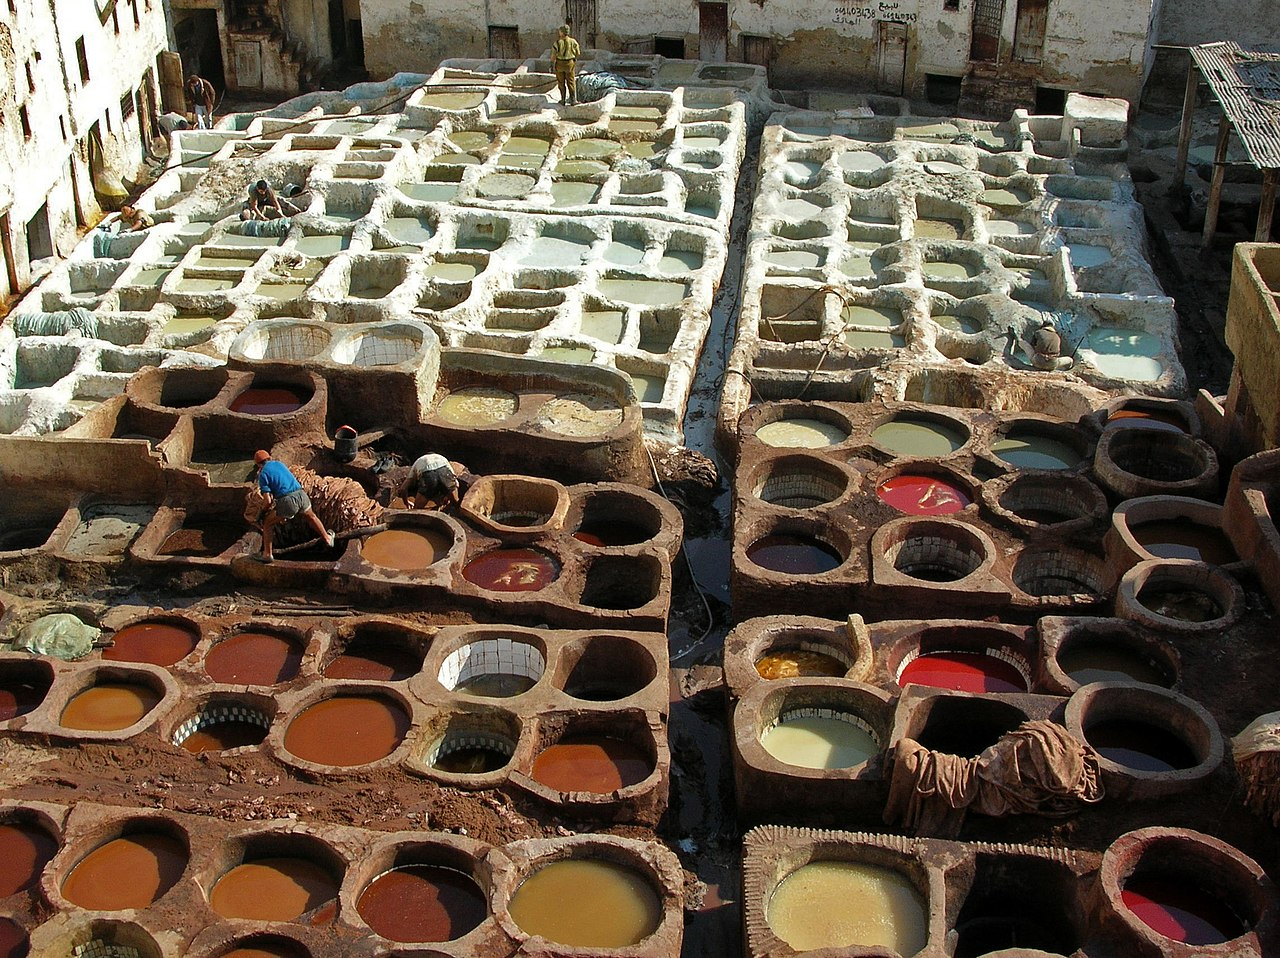 File:Leather tanning, Fes.jpg - Wikipedia